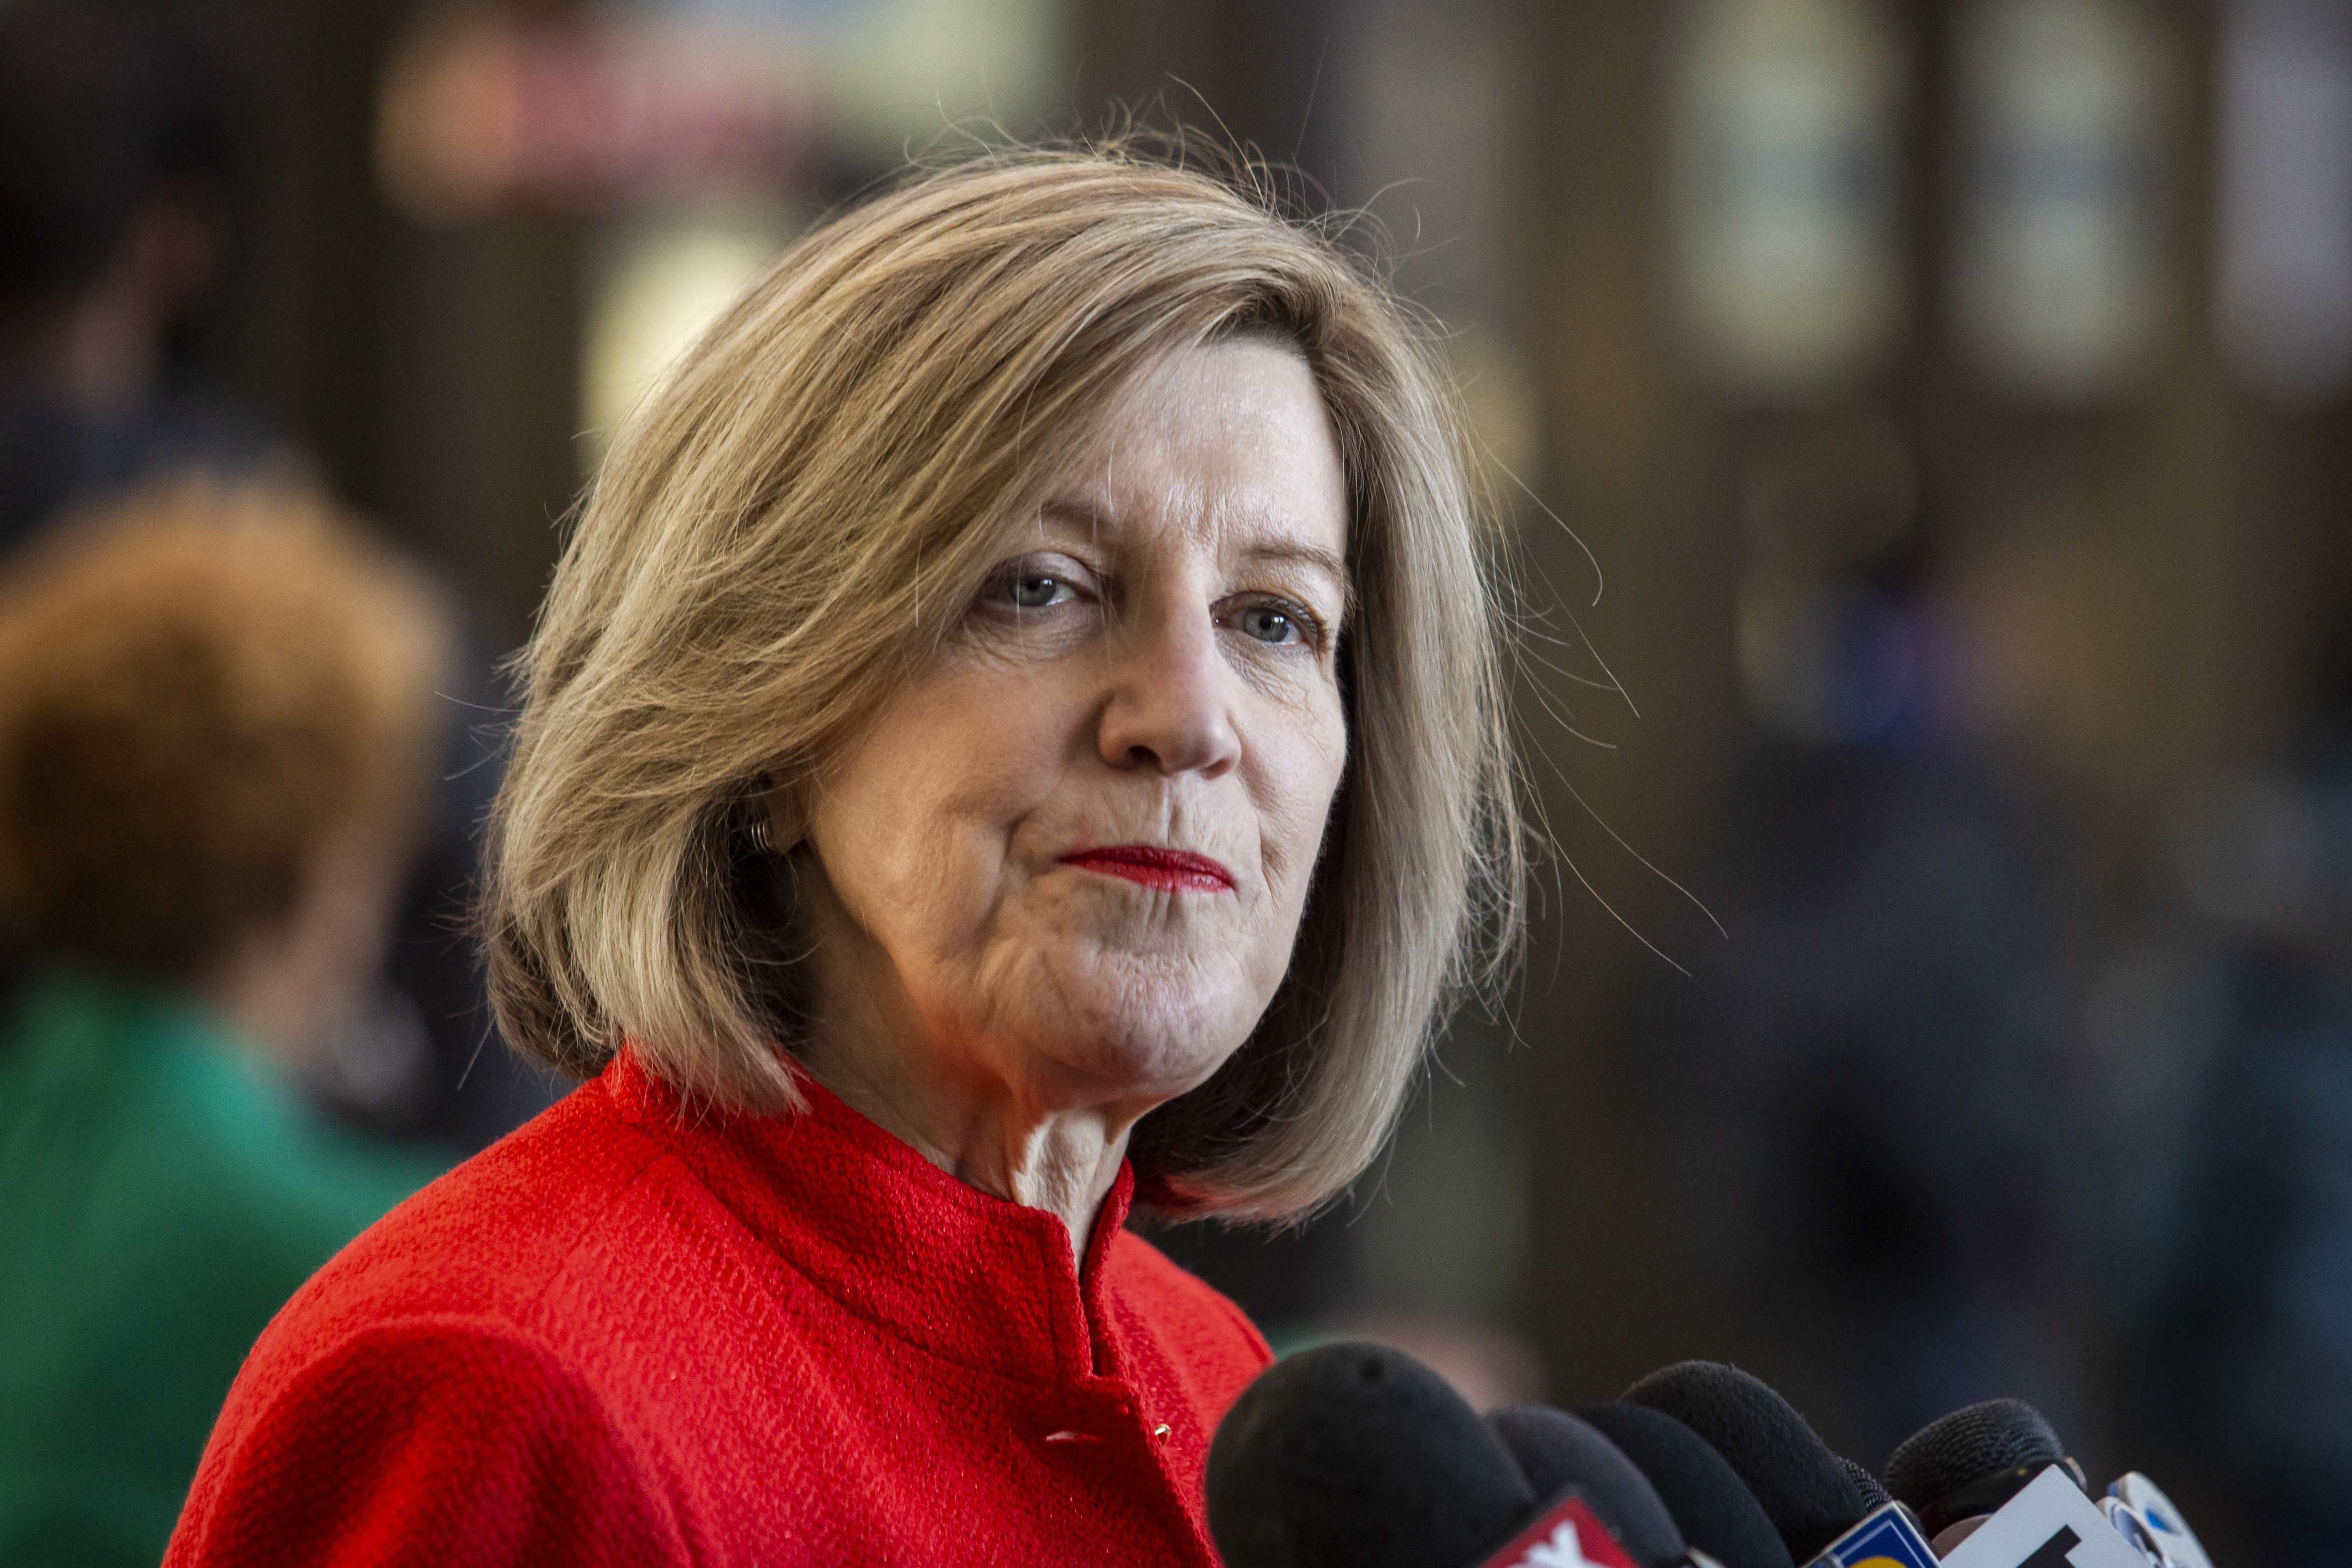 Retired judge Sheila O'Brien, whose activism led to a special prosecutor investigation of 'Empire' actor Jussie Smollett, speaks to reporters at the Leighton Criminal Courthouse, Friday morning, Feb. 14, 2020. During a hearing Friday, Judge Michael Toomin barred O'Brien from filing motions as the ongoing special prosecutor probe continues.